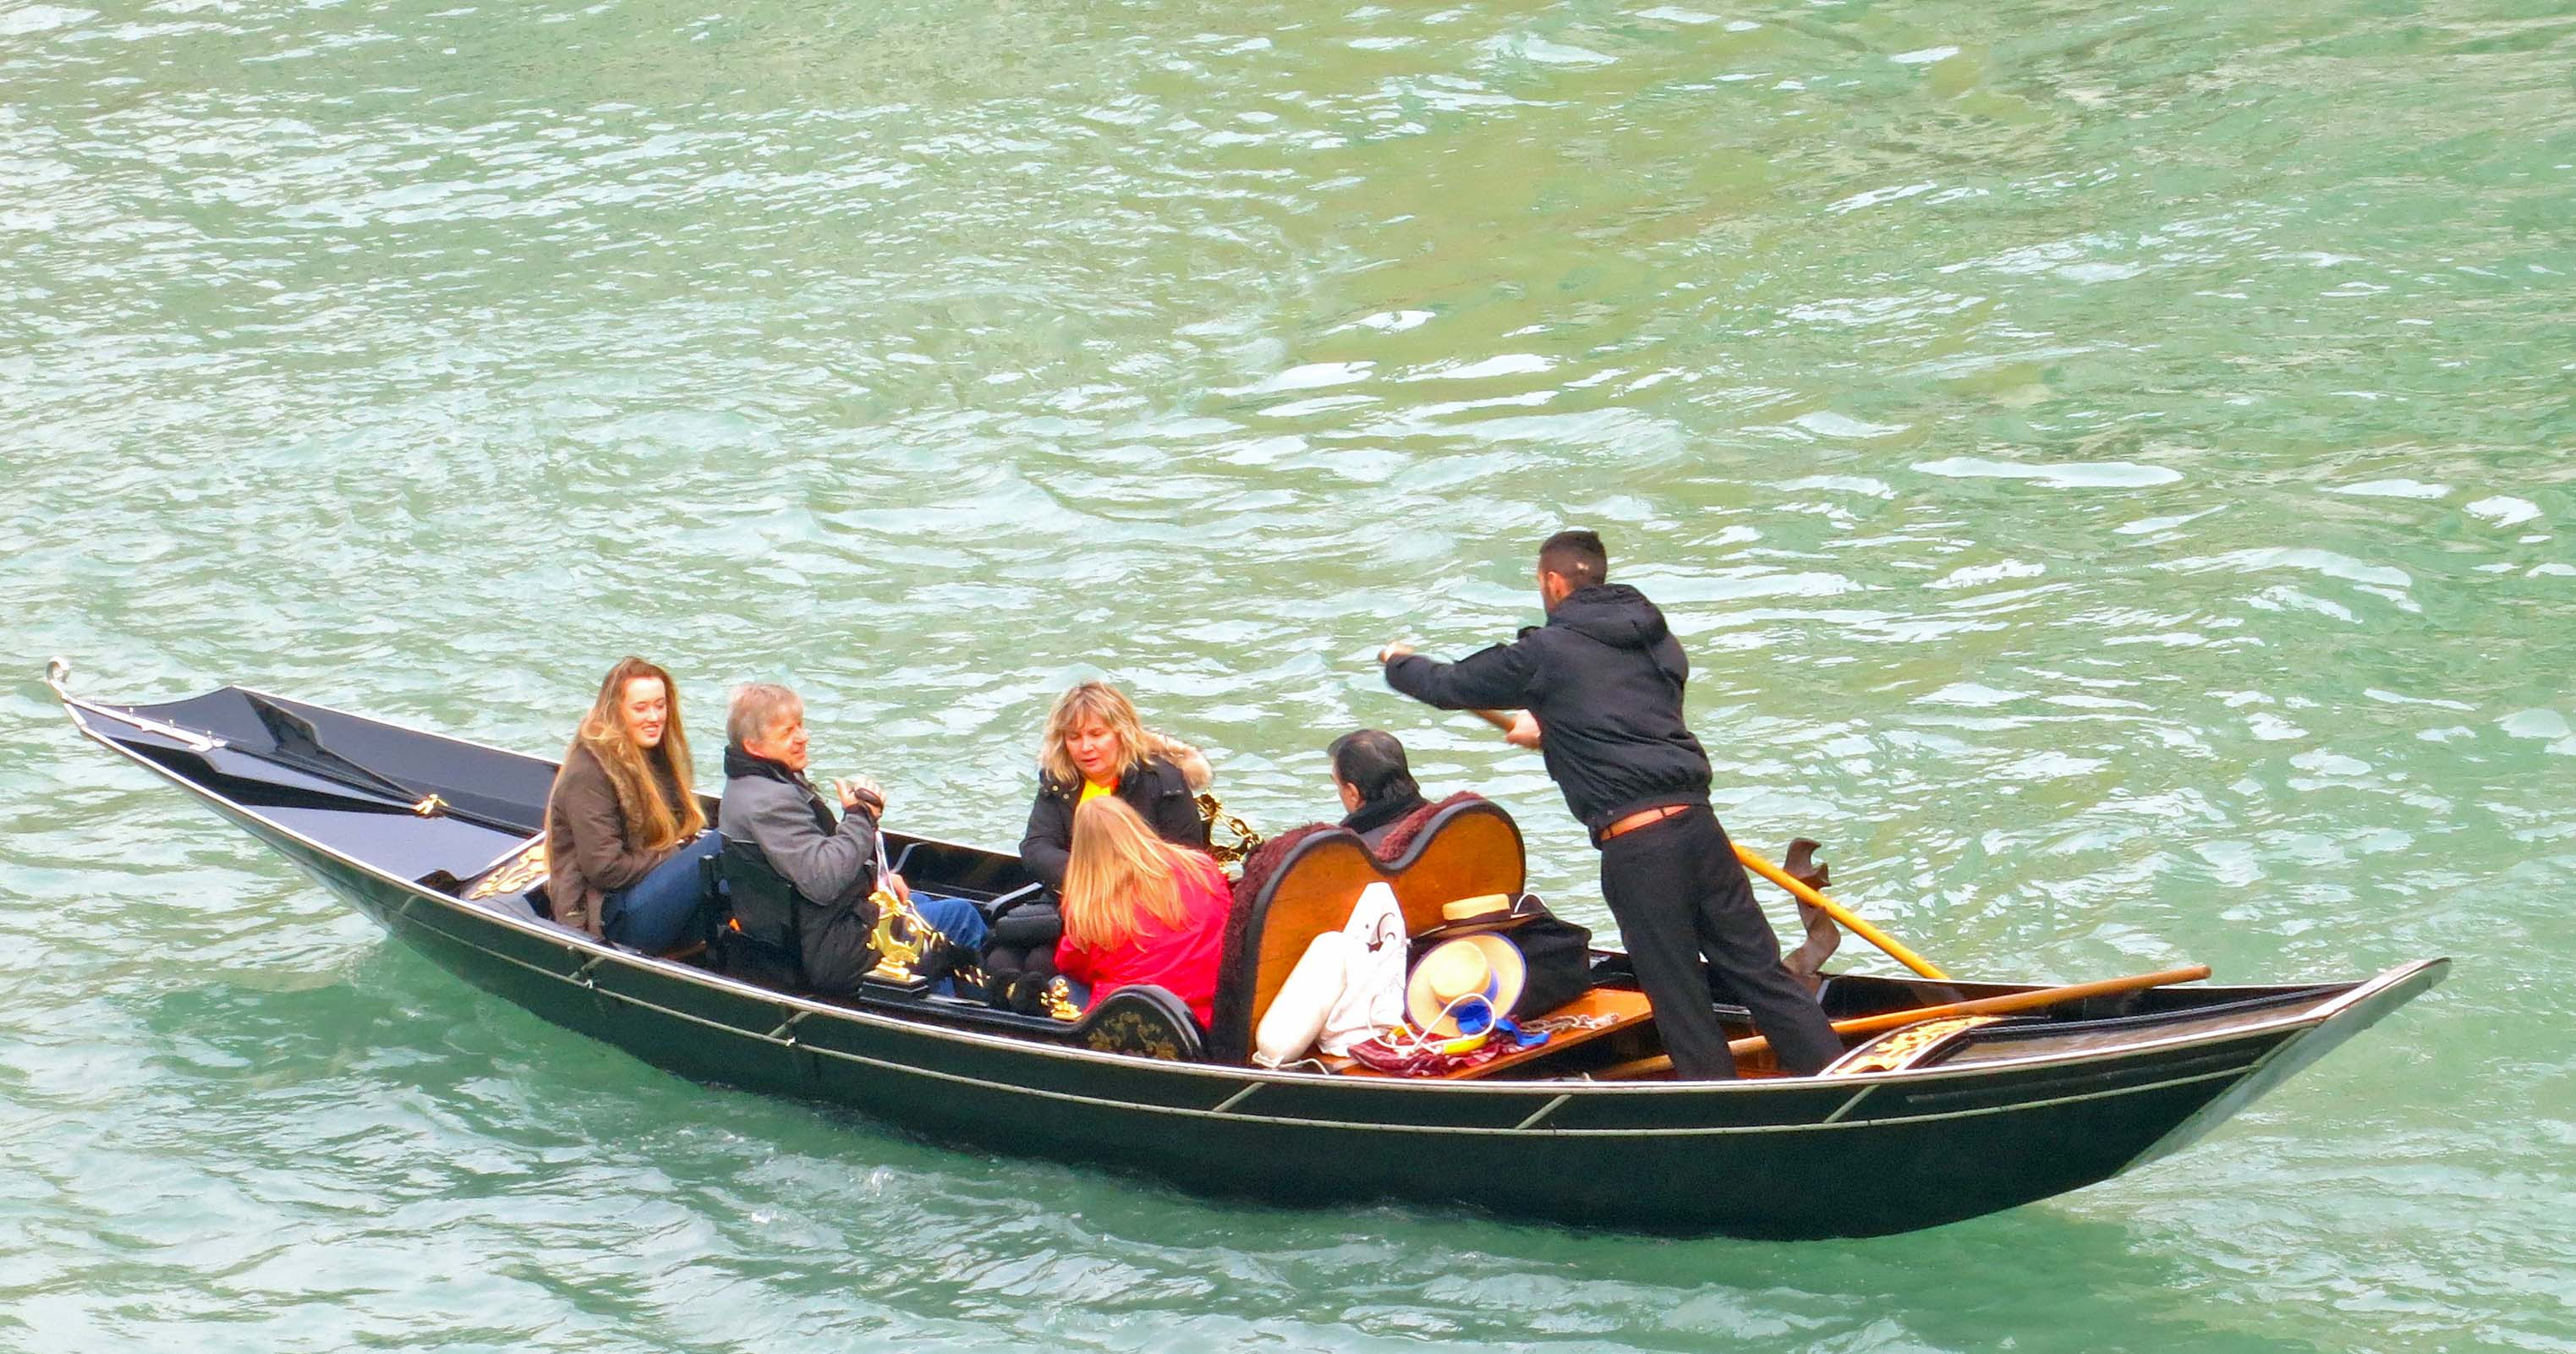 A gondolier works his boat on cold, rough waters in the Grand Canal as his passengers enjoy the ride, bundled up in warm clothes.